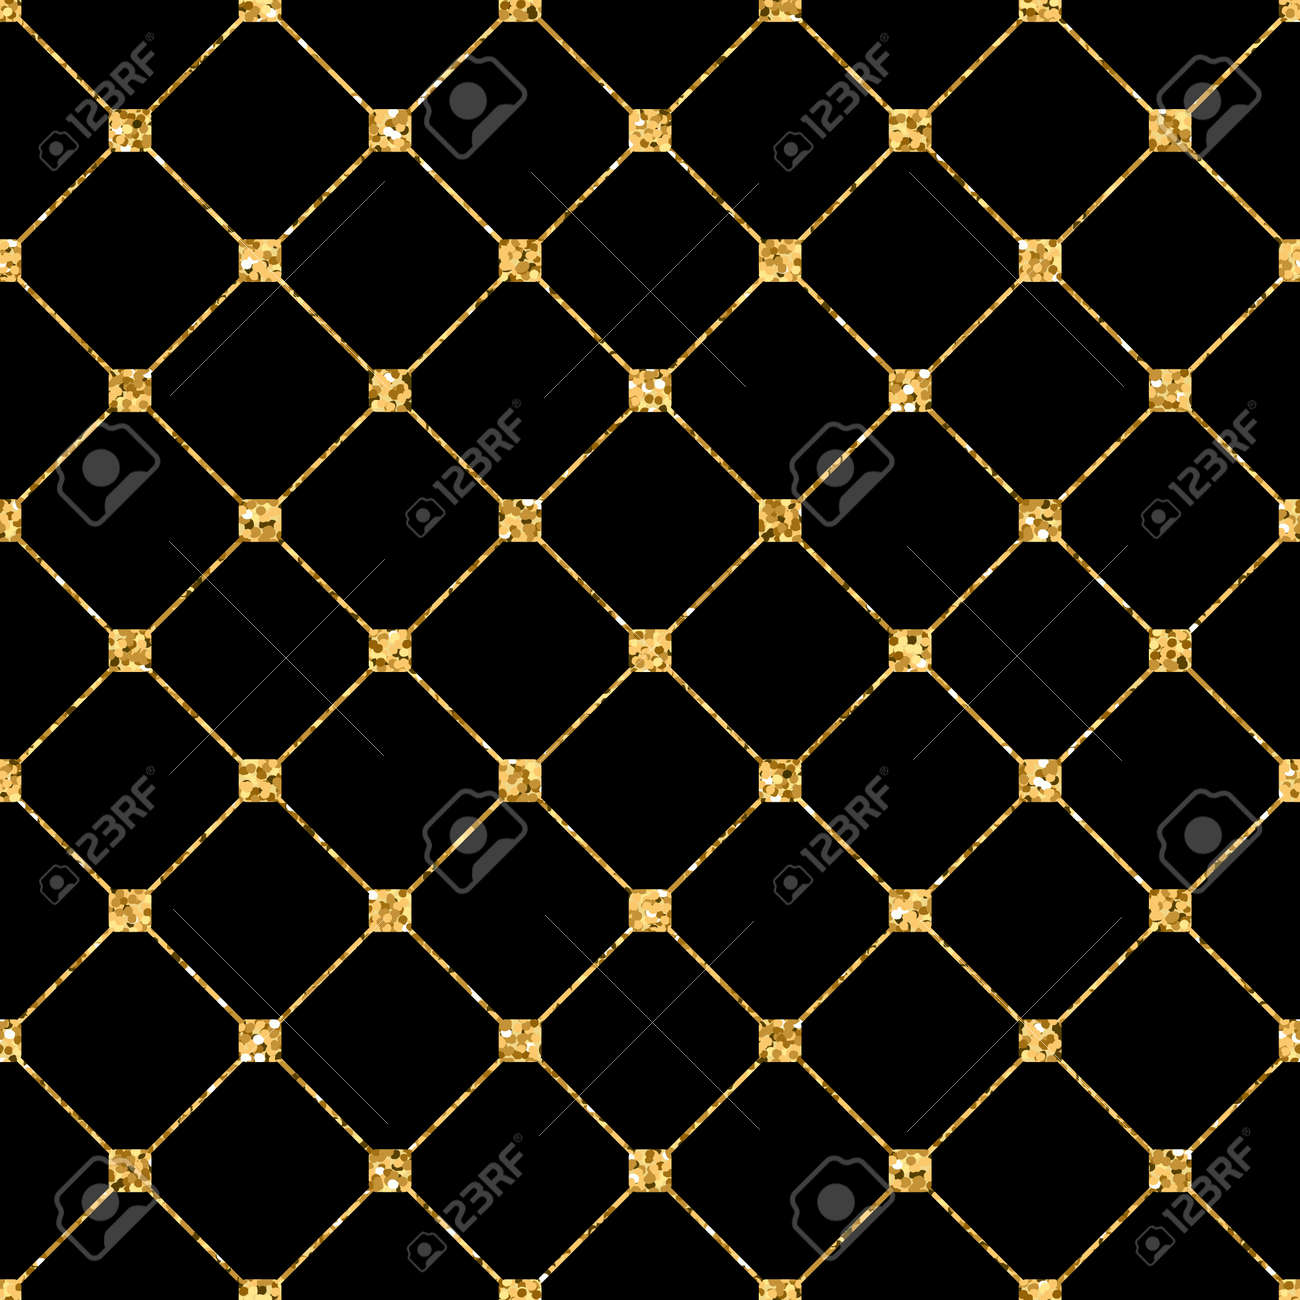 rhombus seamless pattern gold glitter and black template abstract